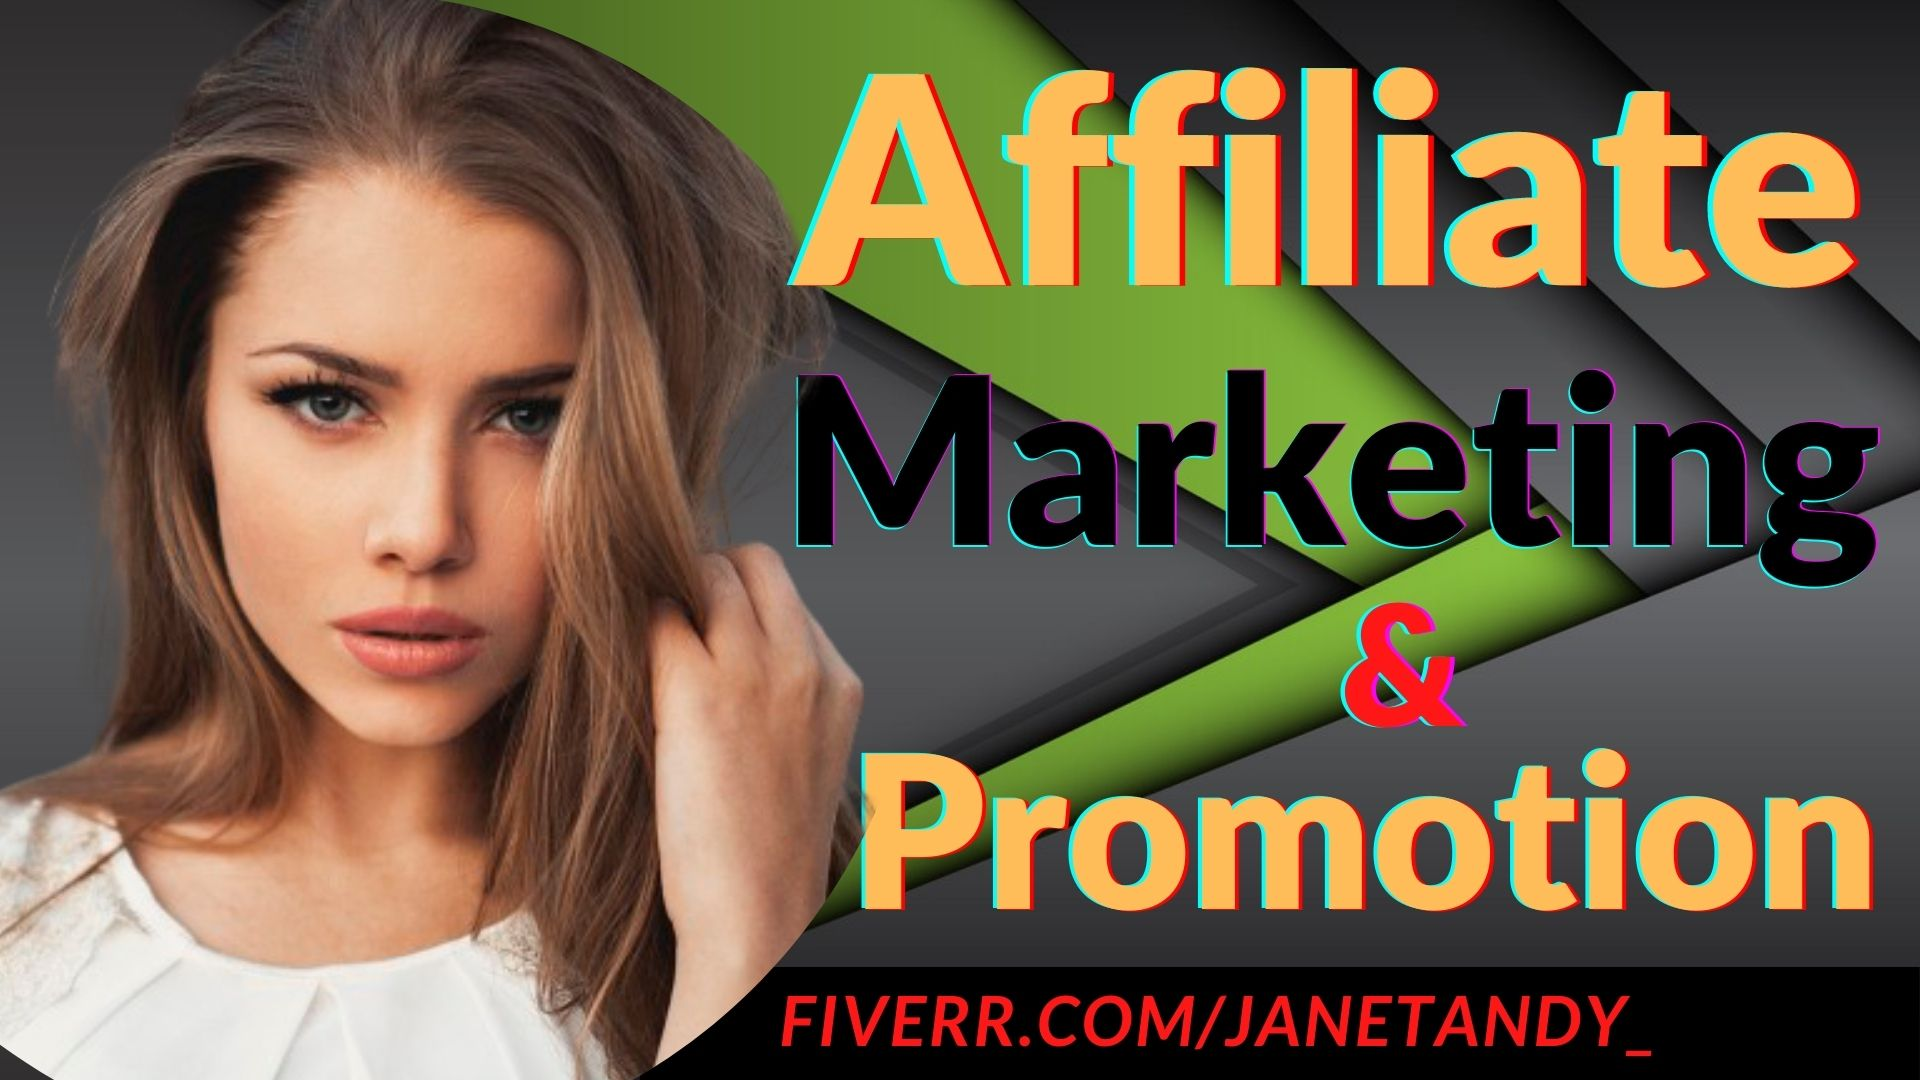 I will amazon affiliate link marketing teespring redbubble etsy sales promotion, FiverrBox